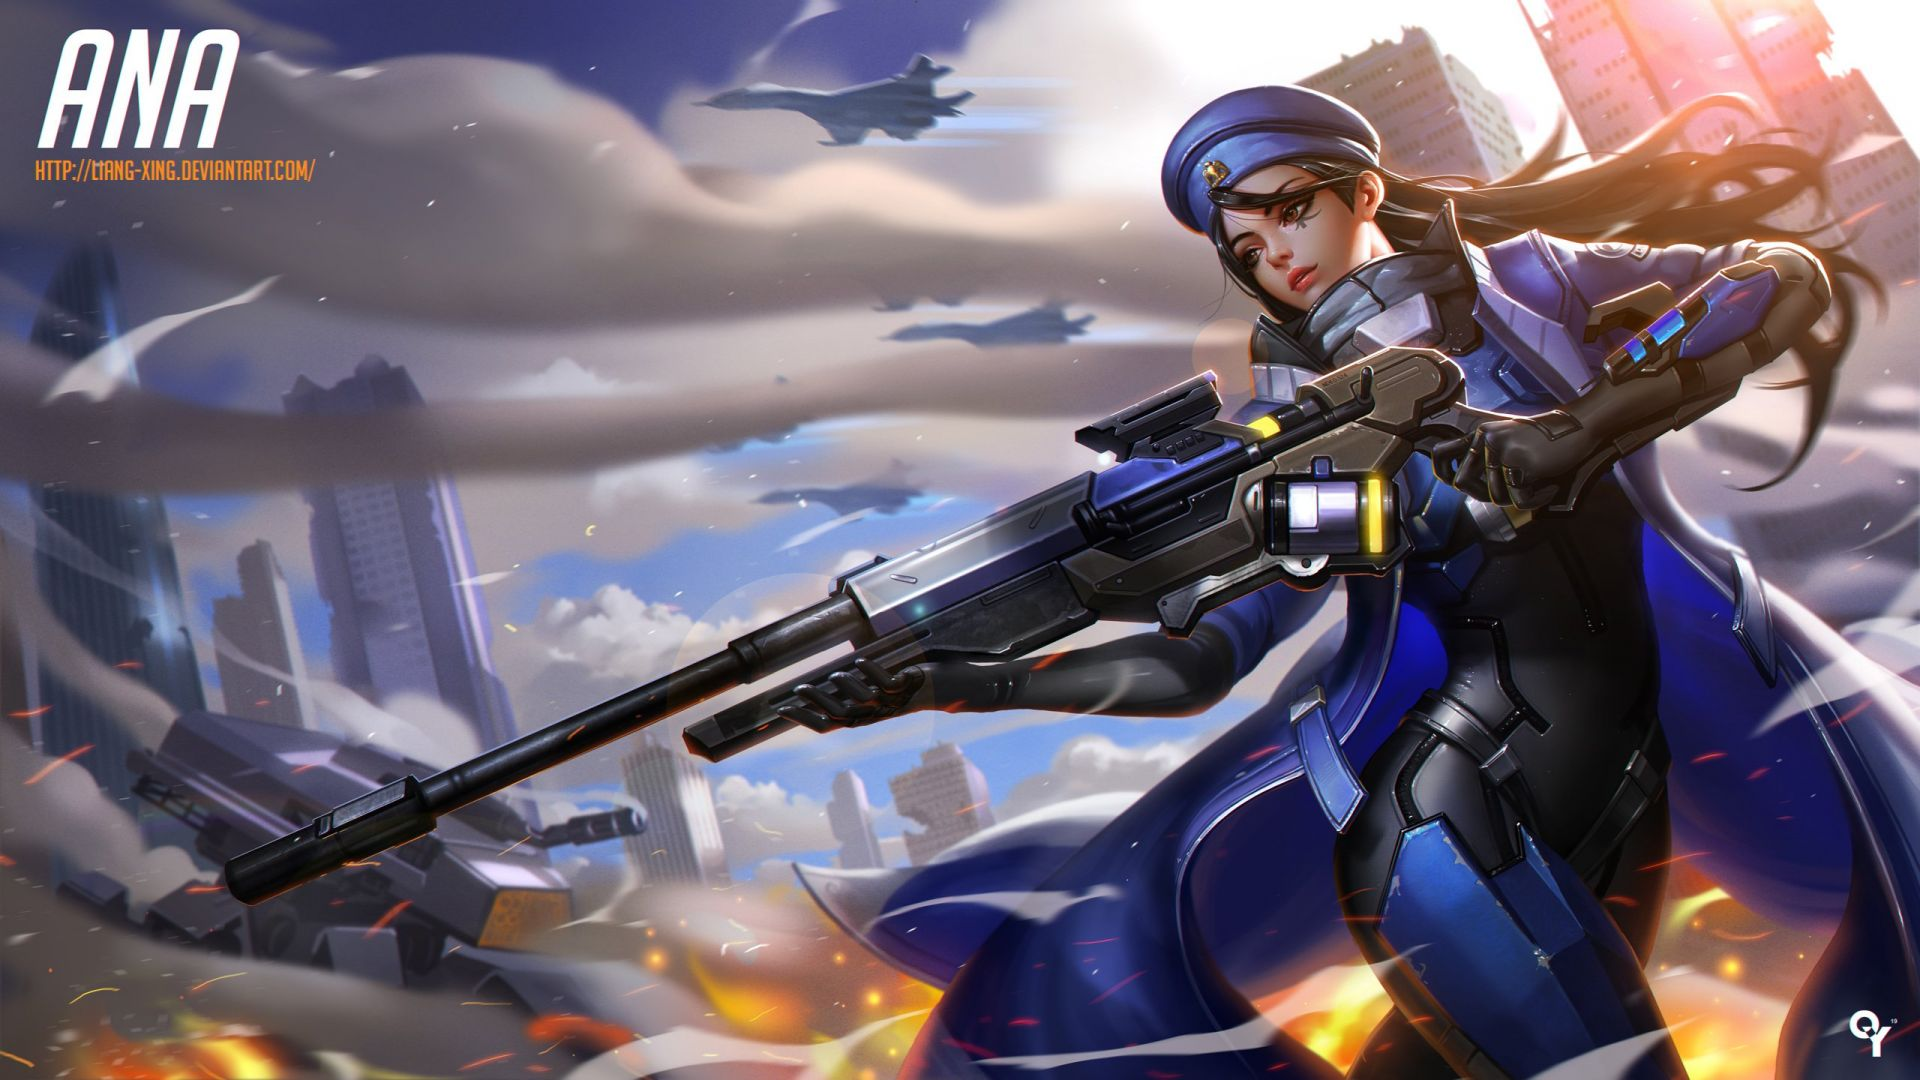 Ana, HD, Overwatch, fan art (horizontal)